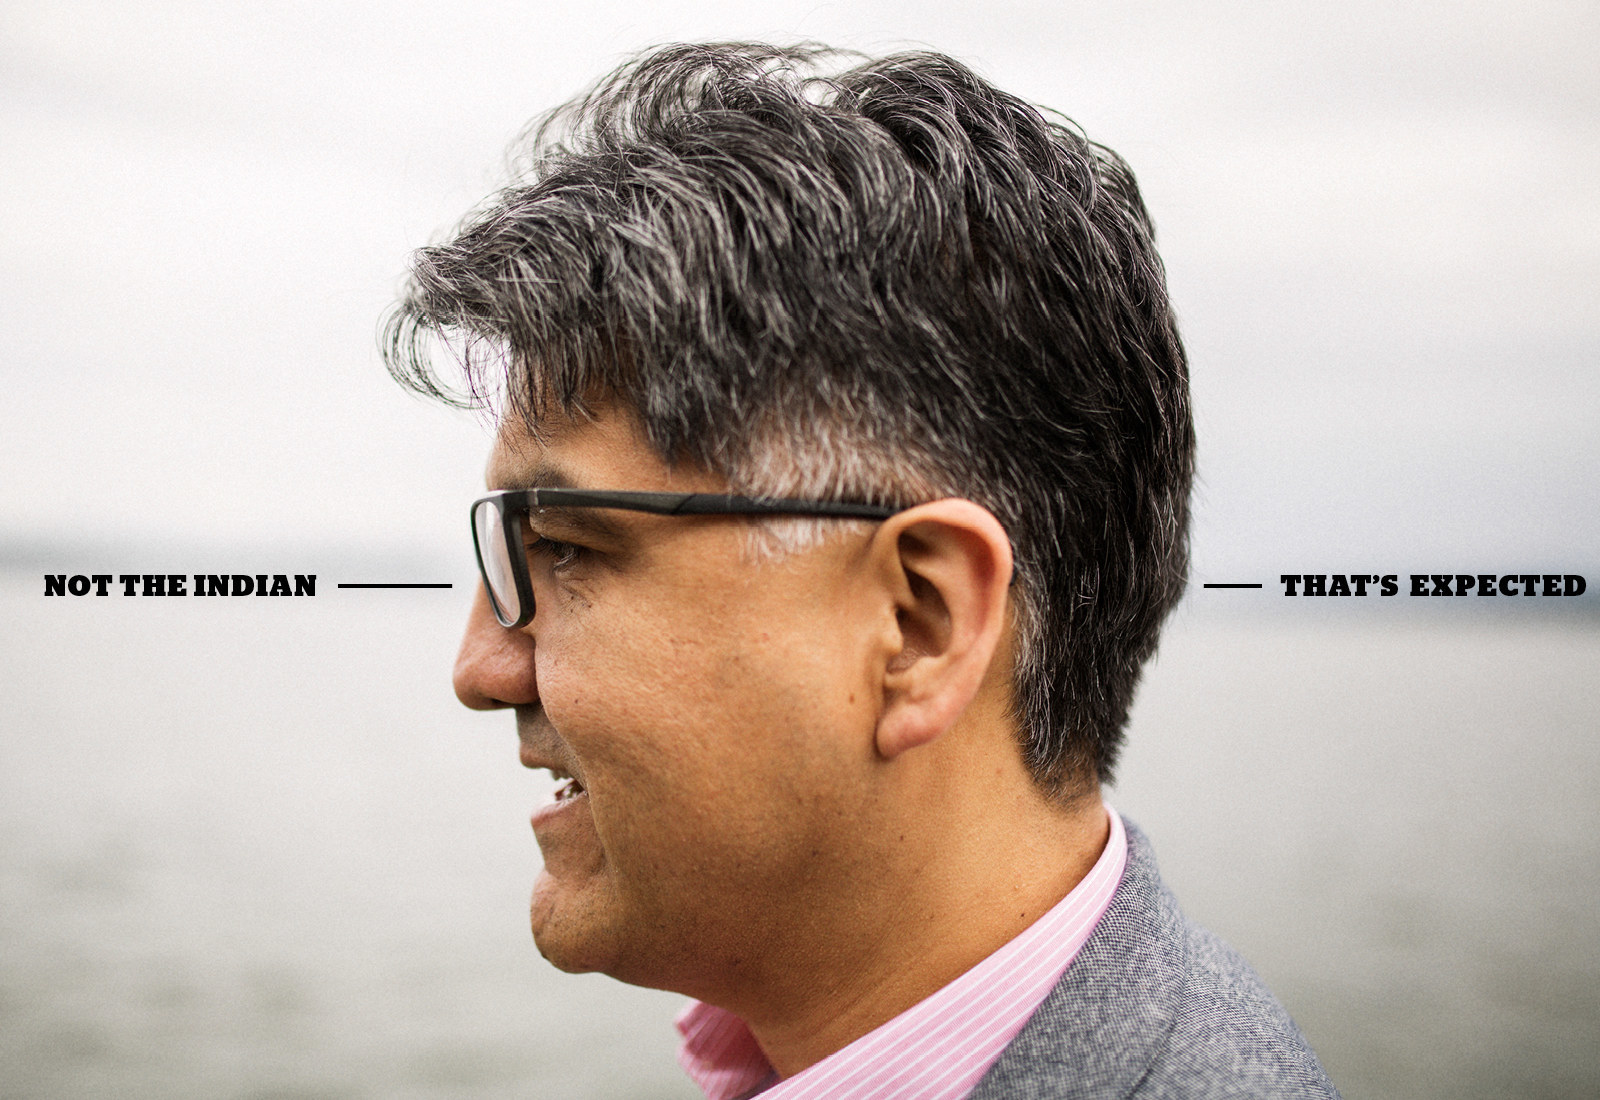 Sherman Alexie on How Trump is Turning the US Into a Reservation